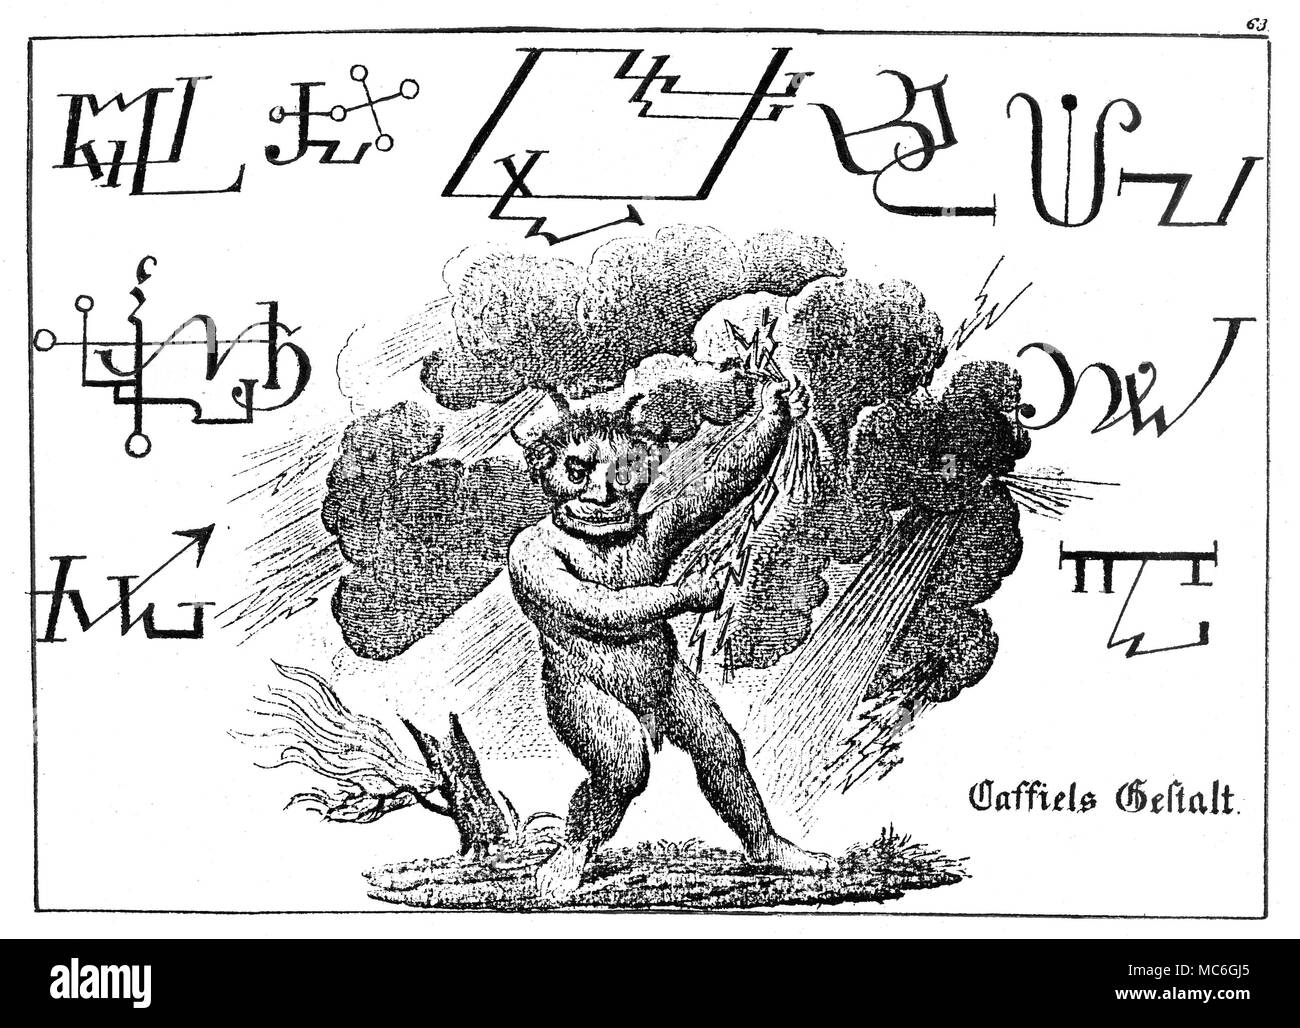 DEMONS - SIGILS - CASSIEL The image of Cassiel, seemingly in control of thunder and lightning, along with nine sigils associated with the demon.  Engraving from Schieble's Faustbuch. - Stock Image